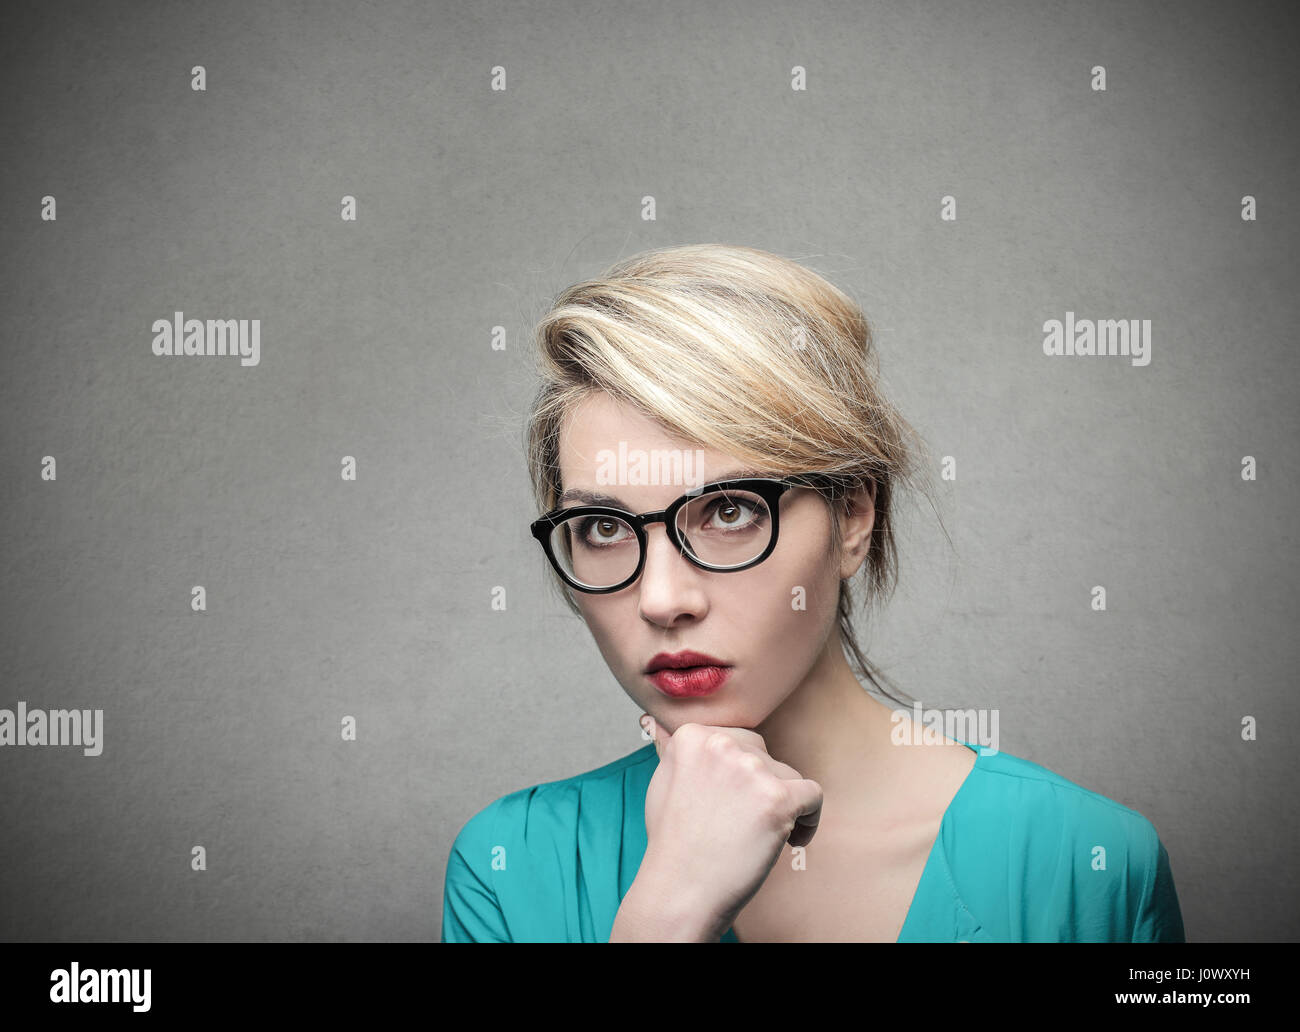 Blond woman in glasses thinking - Stock Image